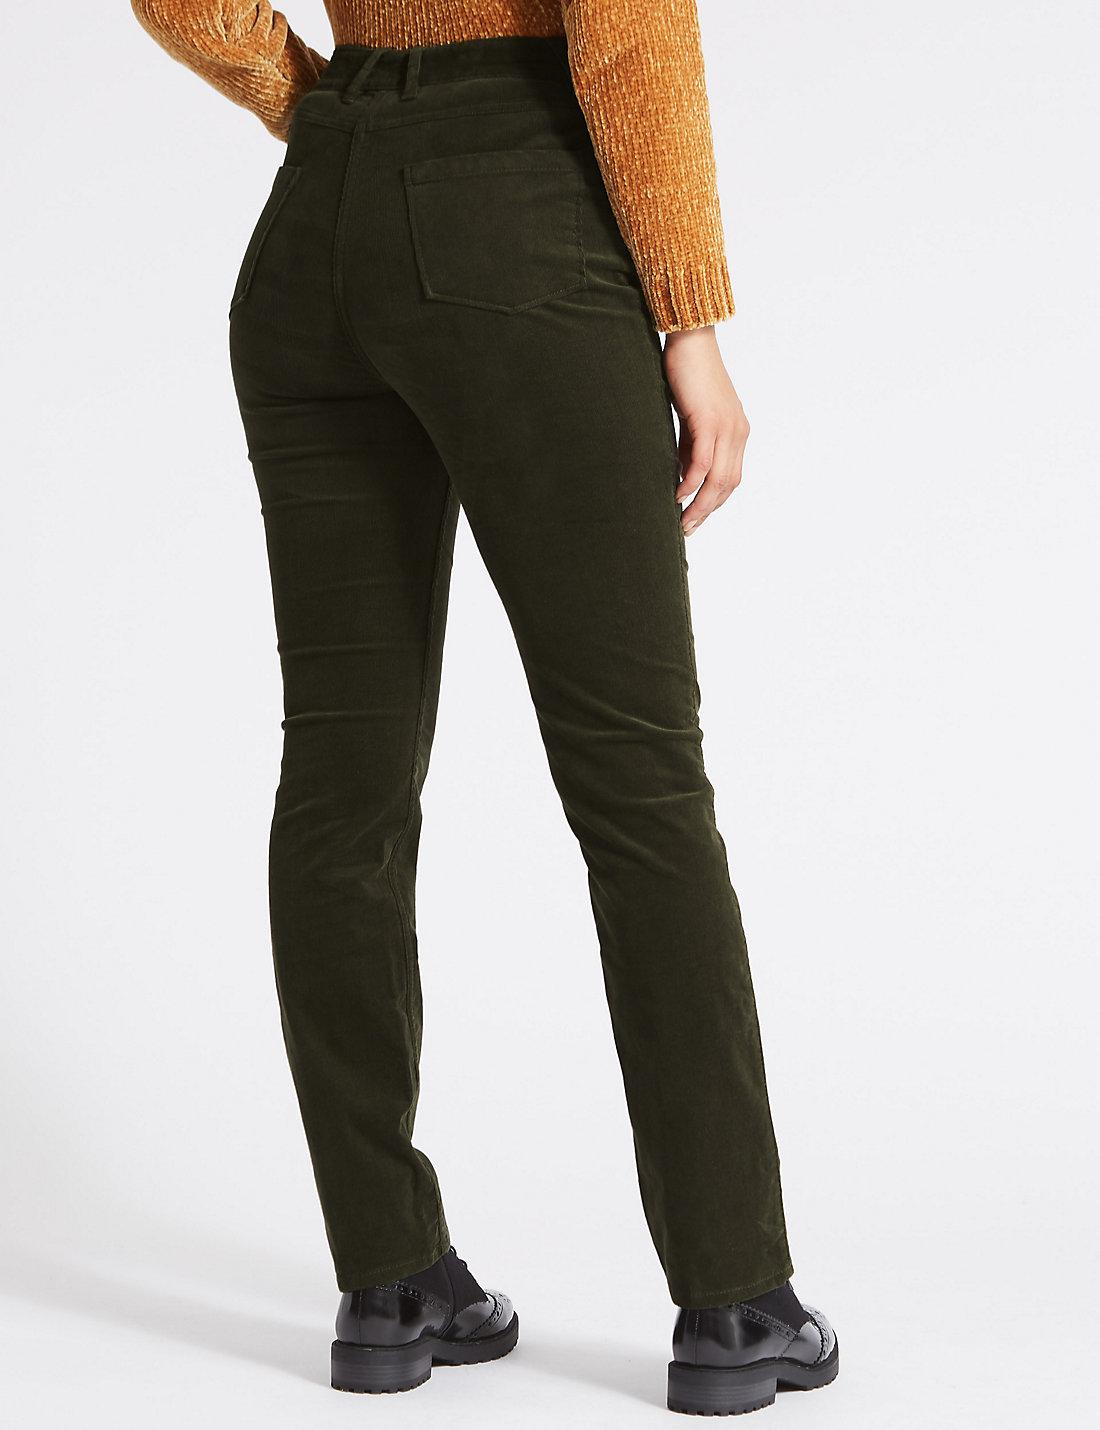 271a6fbaeed Lyst - Marks   Spencer Cotton Rich Straight Leg Corduroy Trousers